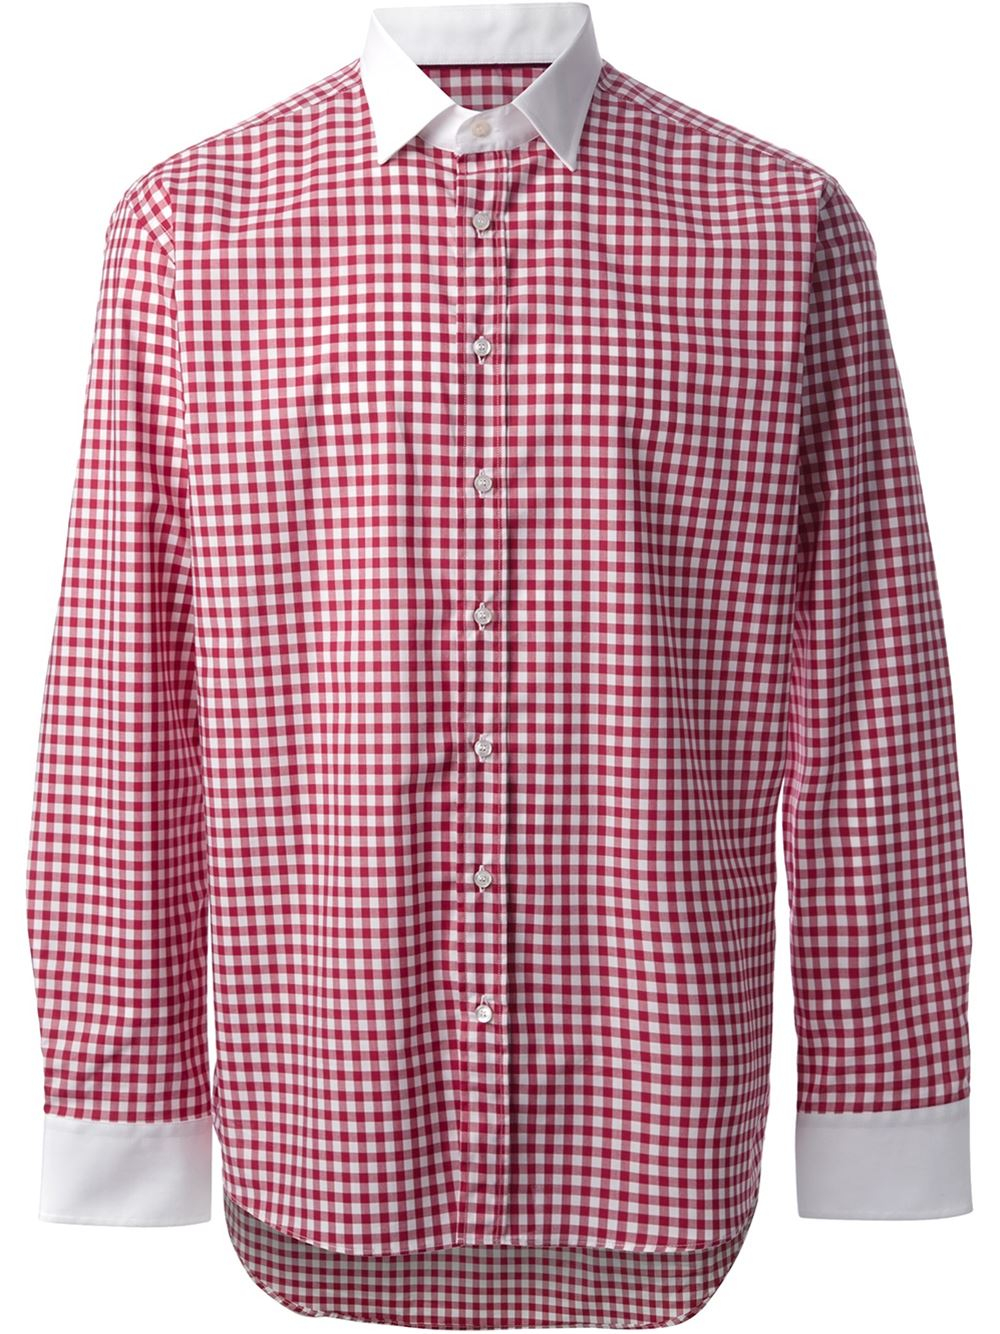 Etro gingham print shirt in red for men lyst for Red and white gingham shirt women s